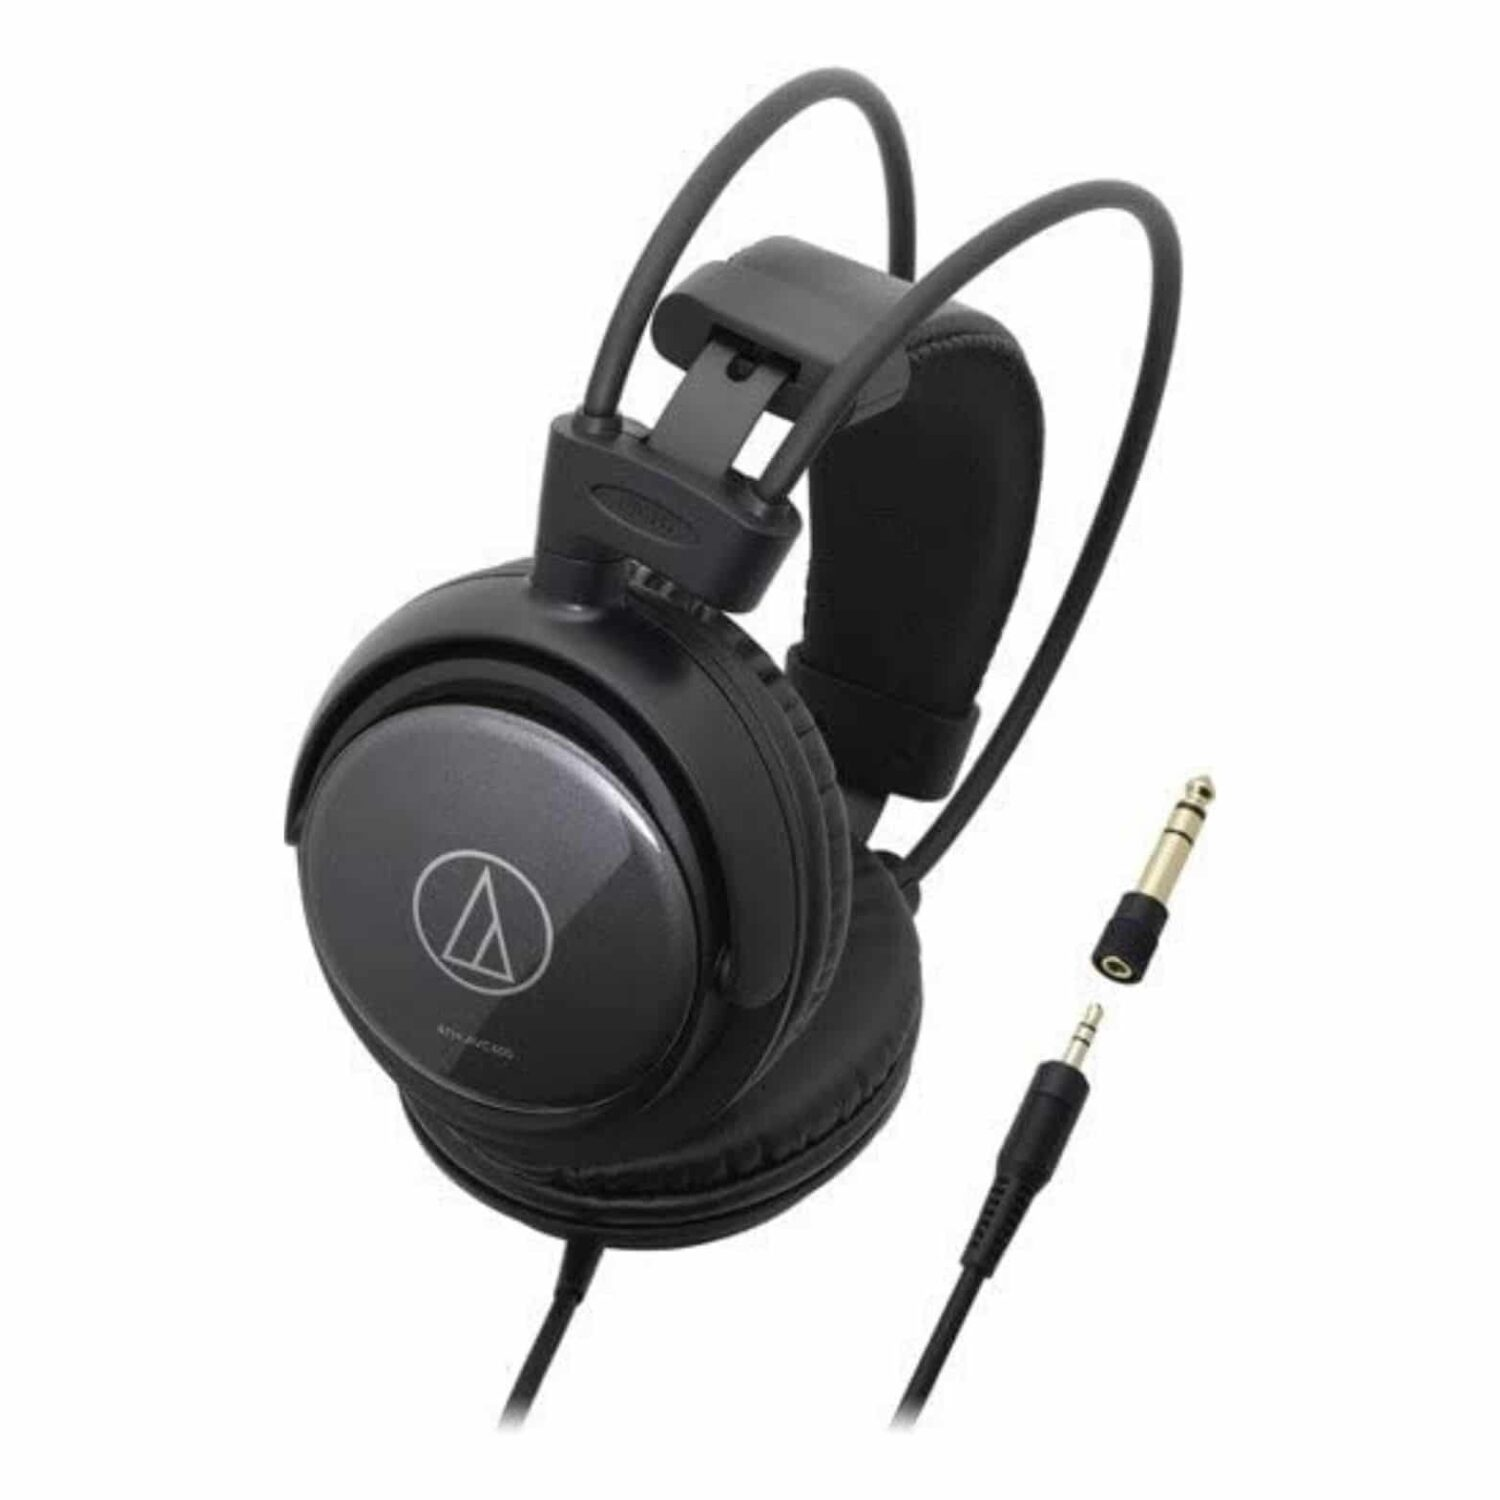 Audifono Cerrado Audio Technica Audio Technica ATH-AVC400